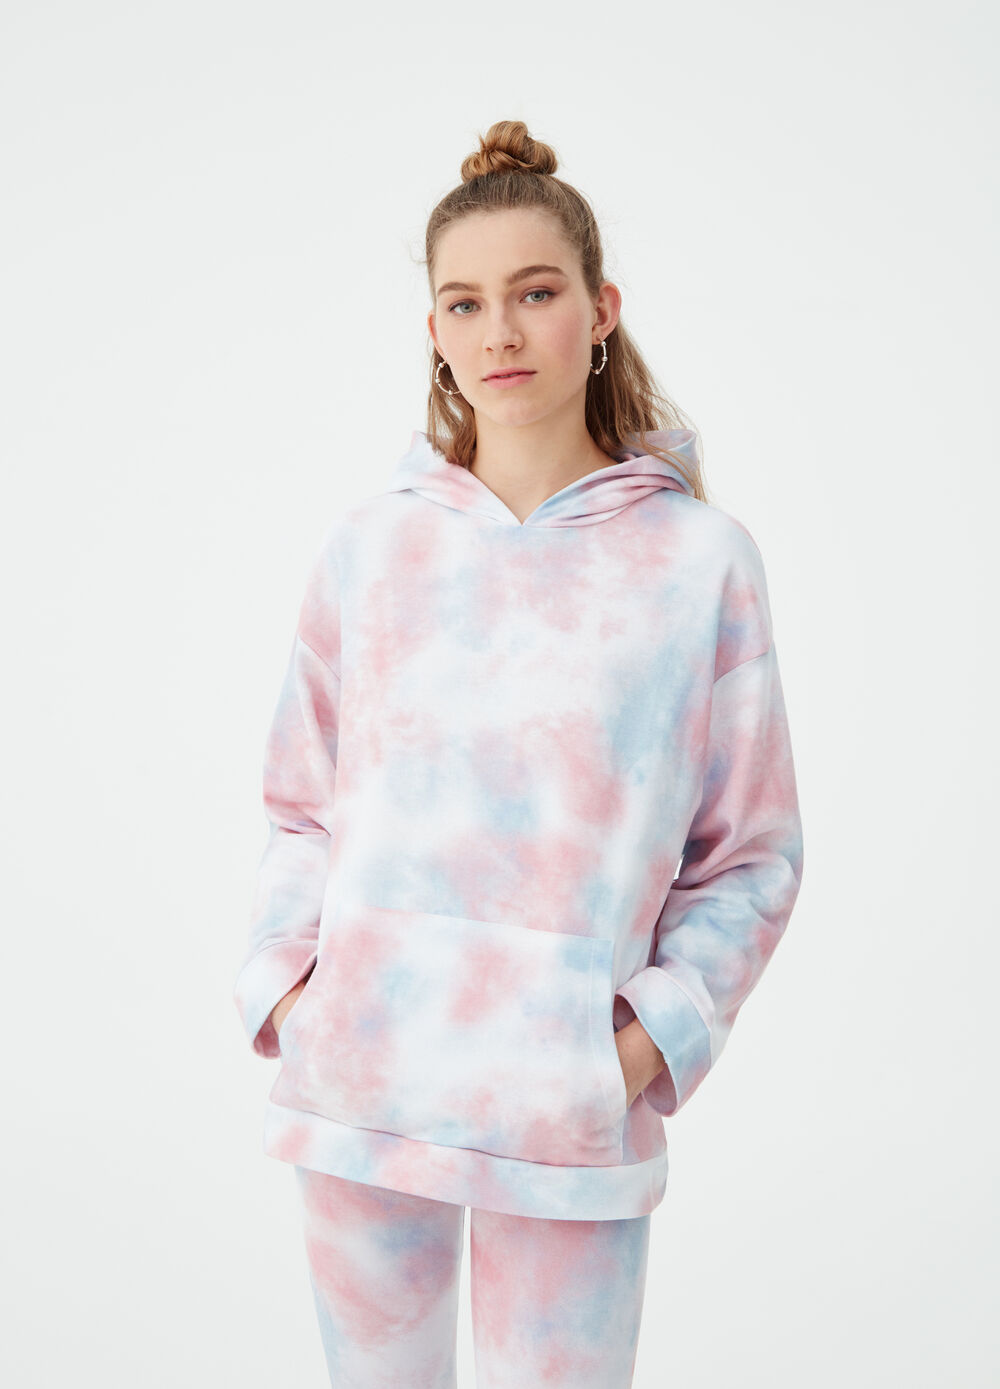 Multicoloured shaded-effect sweatshirt